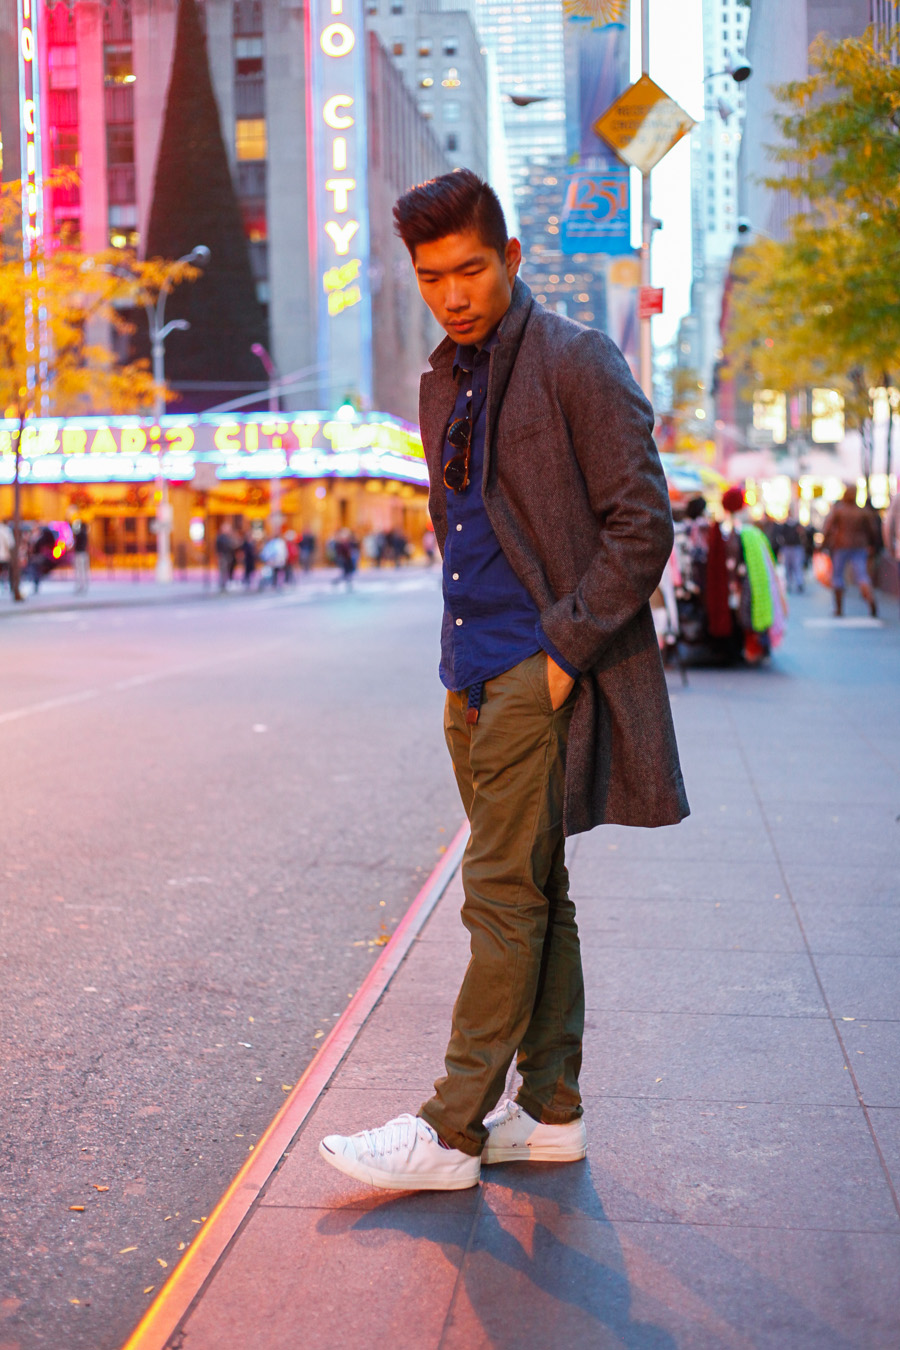 Levitate Style, Men's Style Lab, Leo Chan, Menswear, Tailored, GANT, BOGA, Scotch & Soda, Florsheim